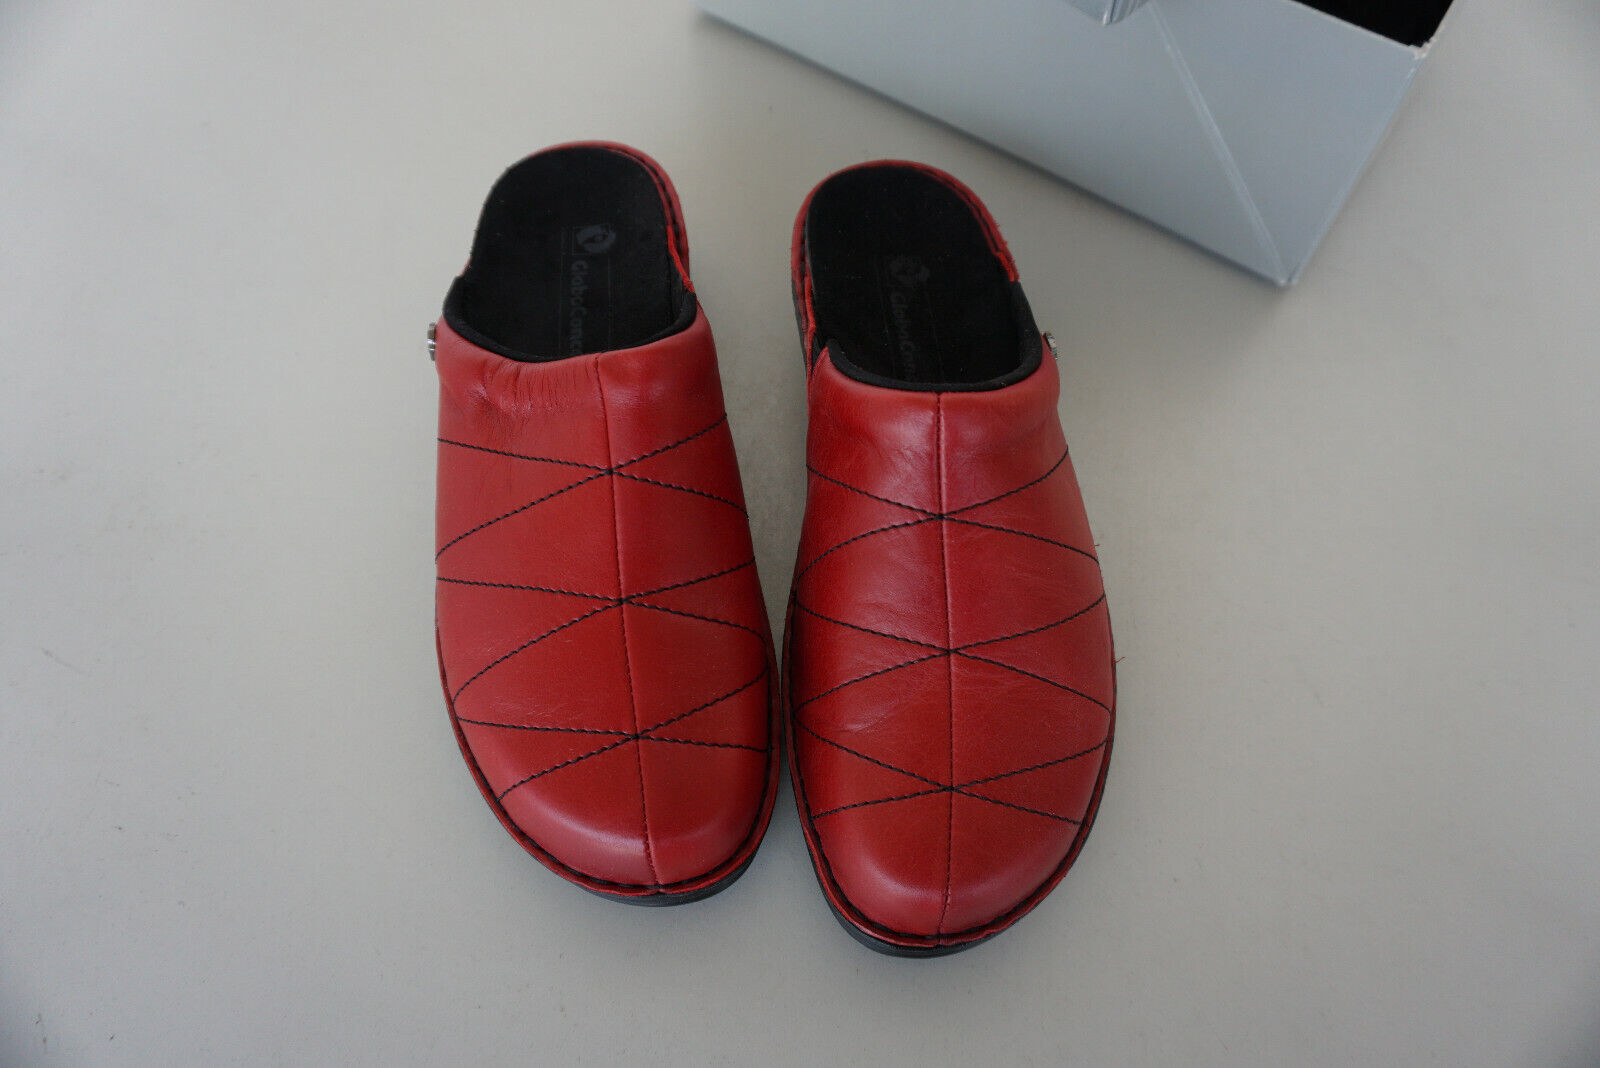 Orthopaedic Globo Concept Women's shoes Sandals Clogs Gr.38 Red Leather New